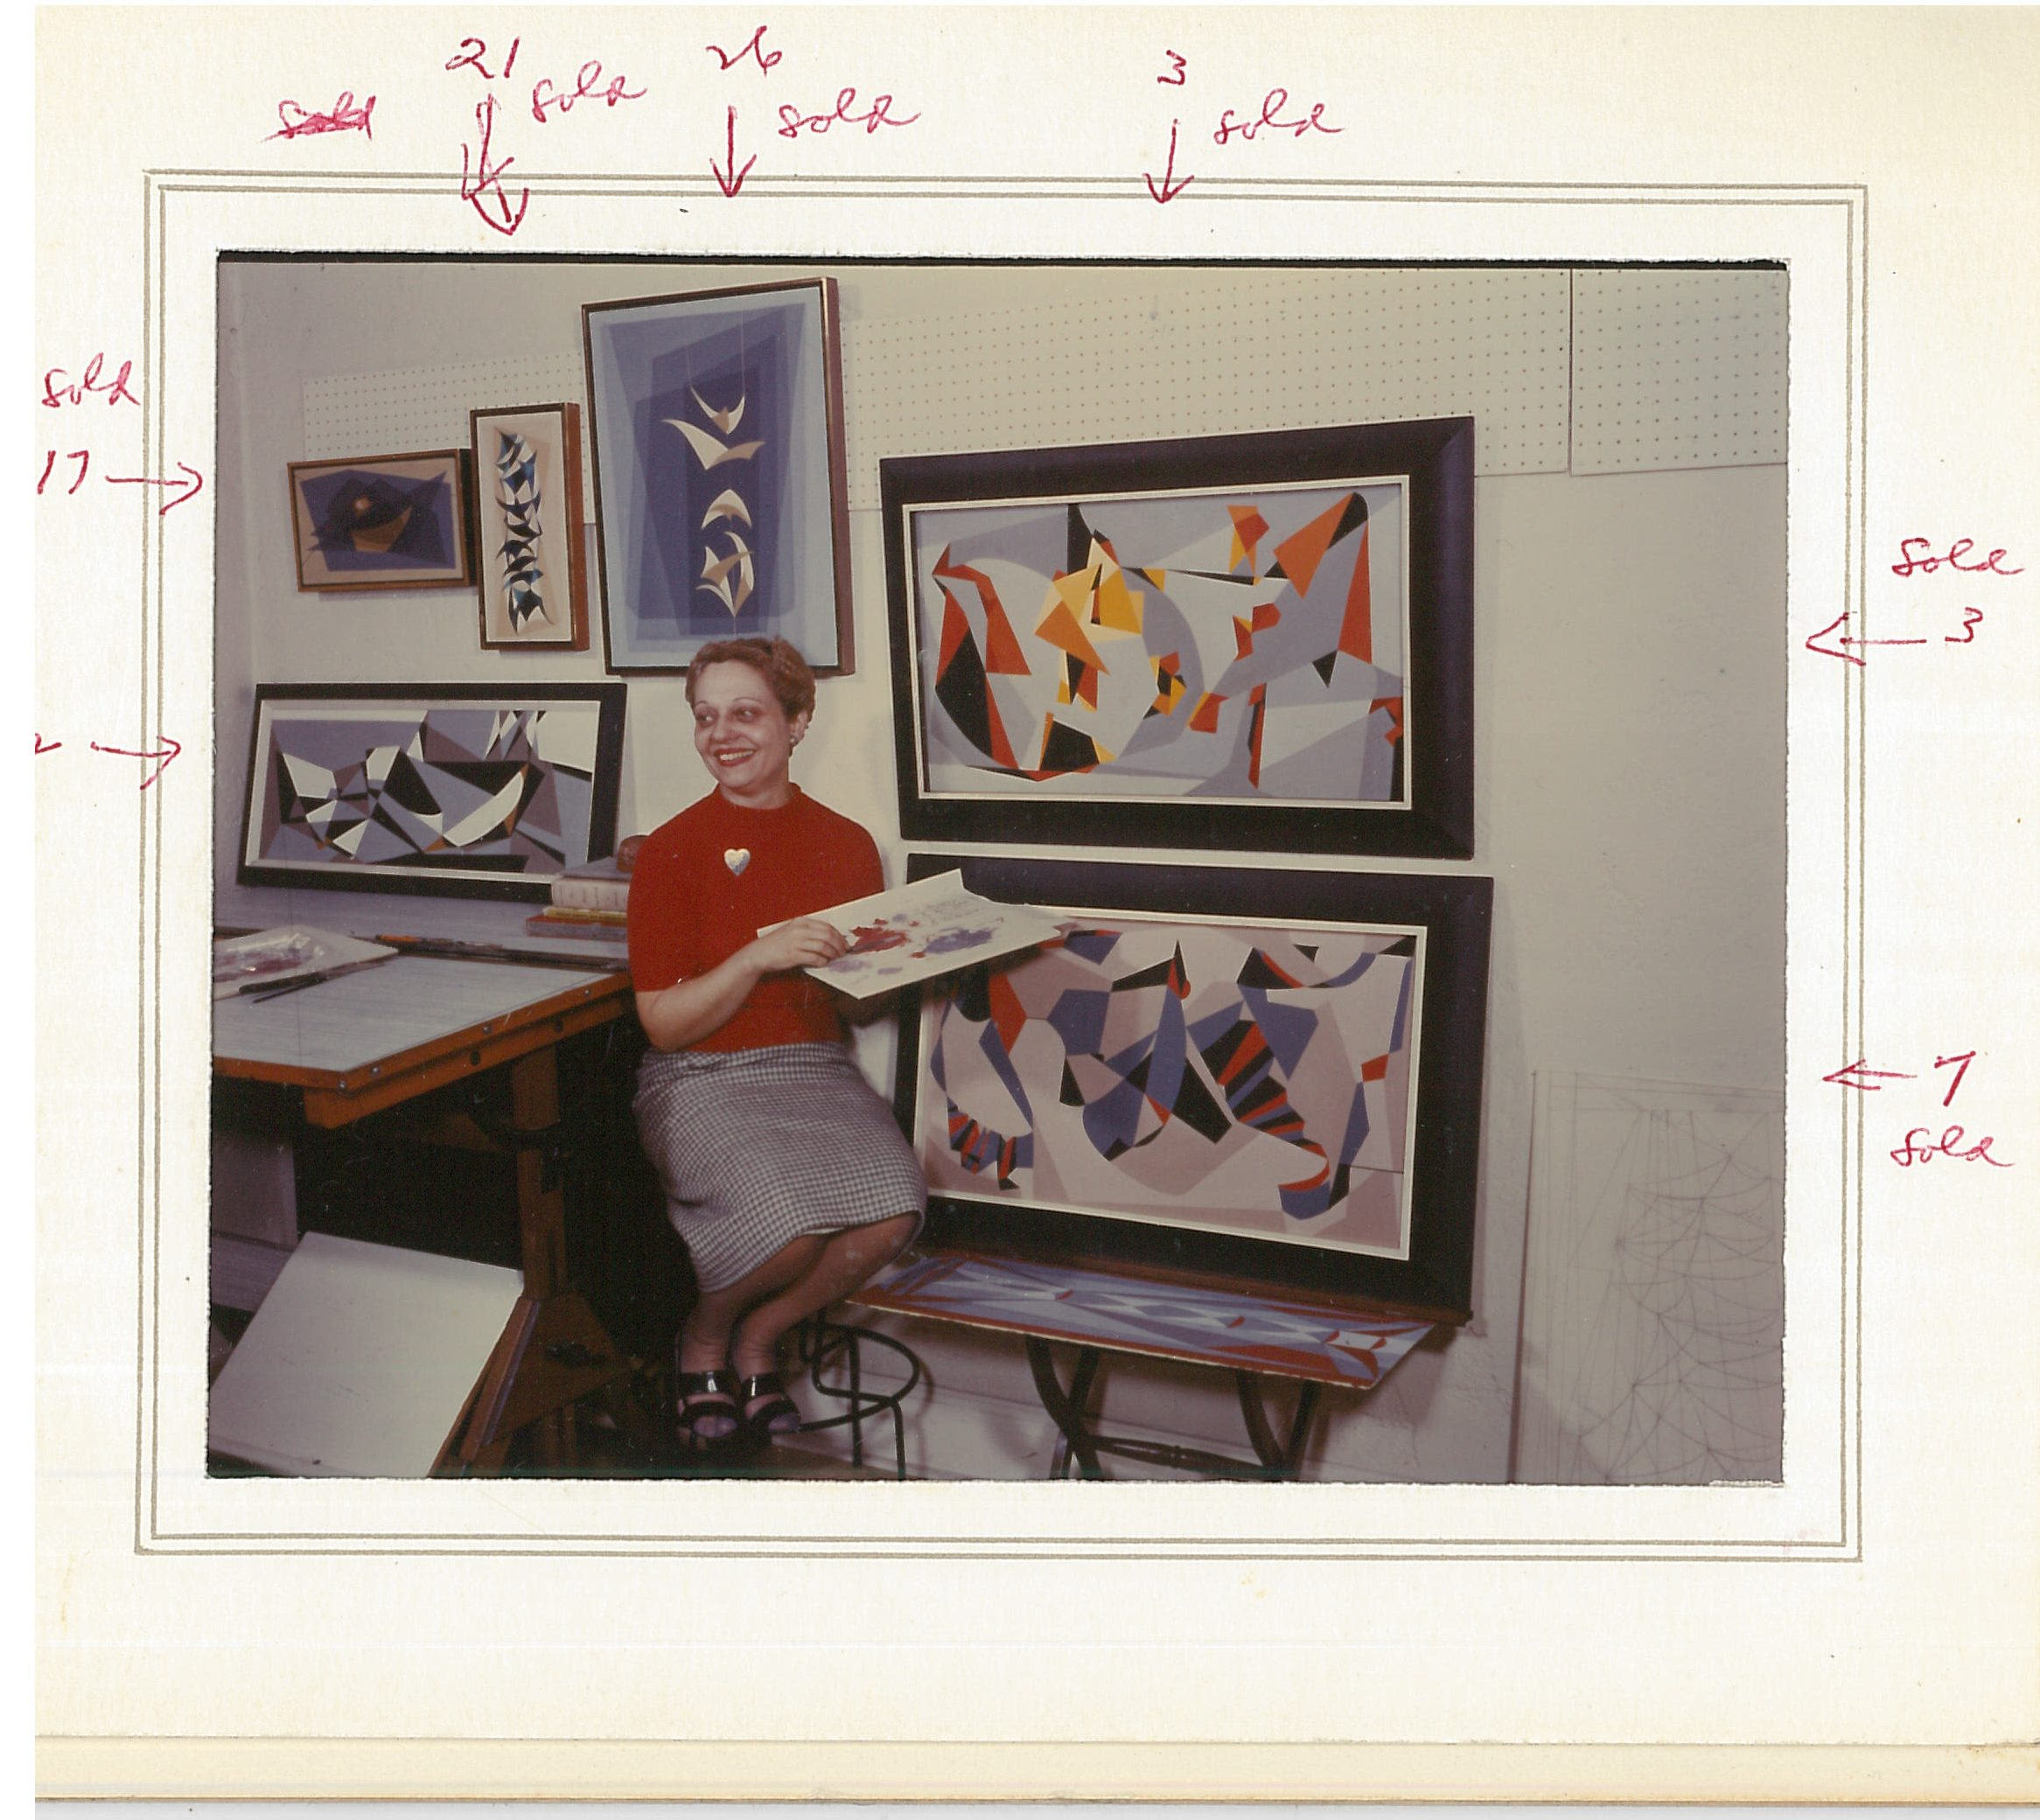 Color photo of Mae Jurow posing in front of several of her art works.